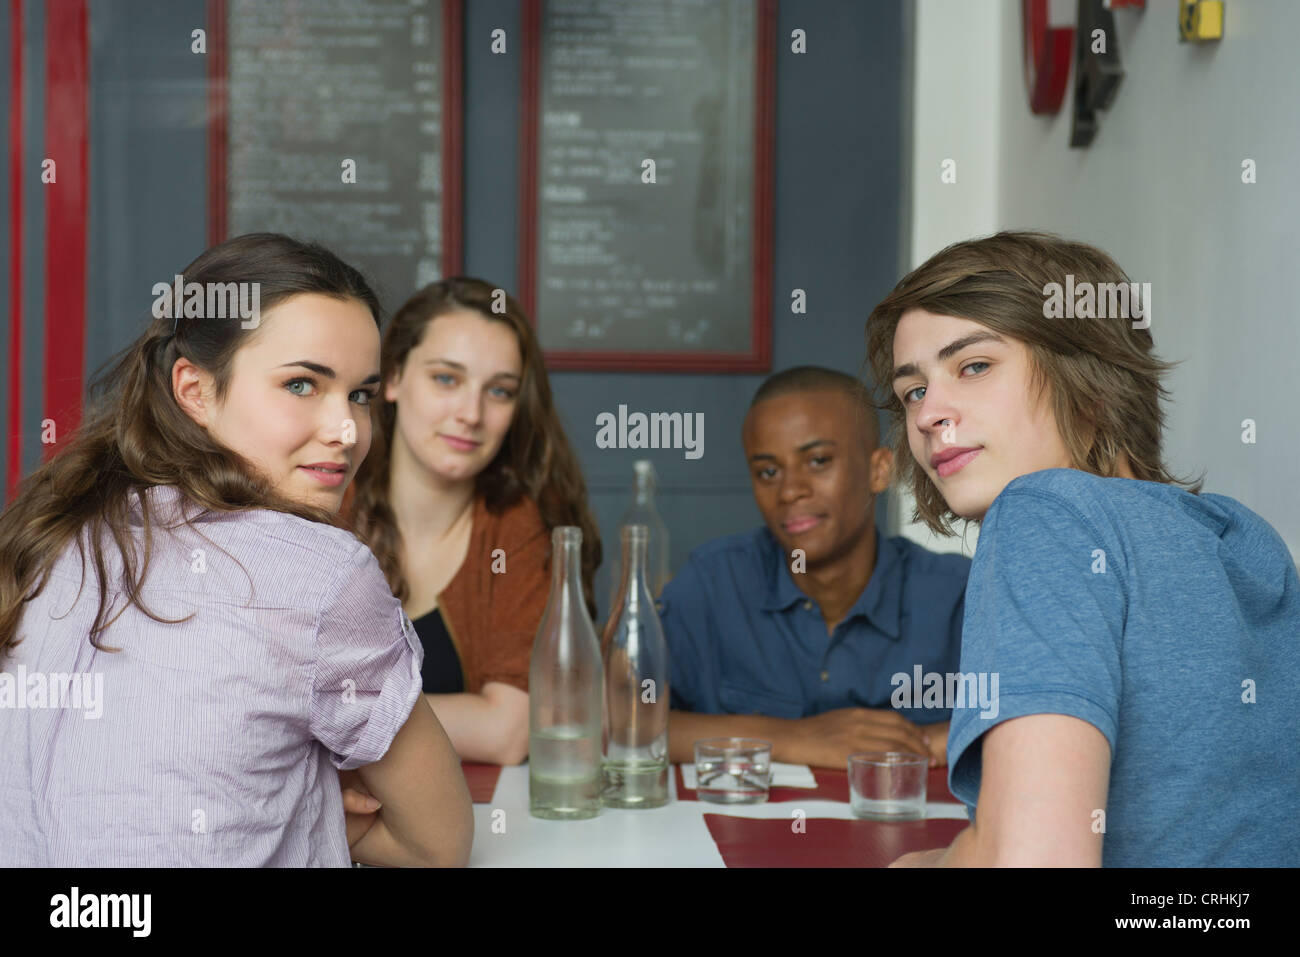 Young adult friends hanging out in cafe - Stock Image